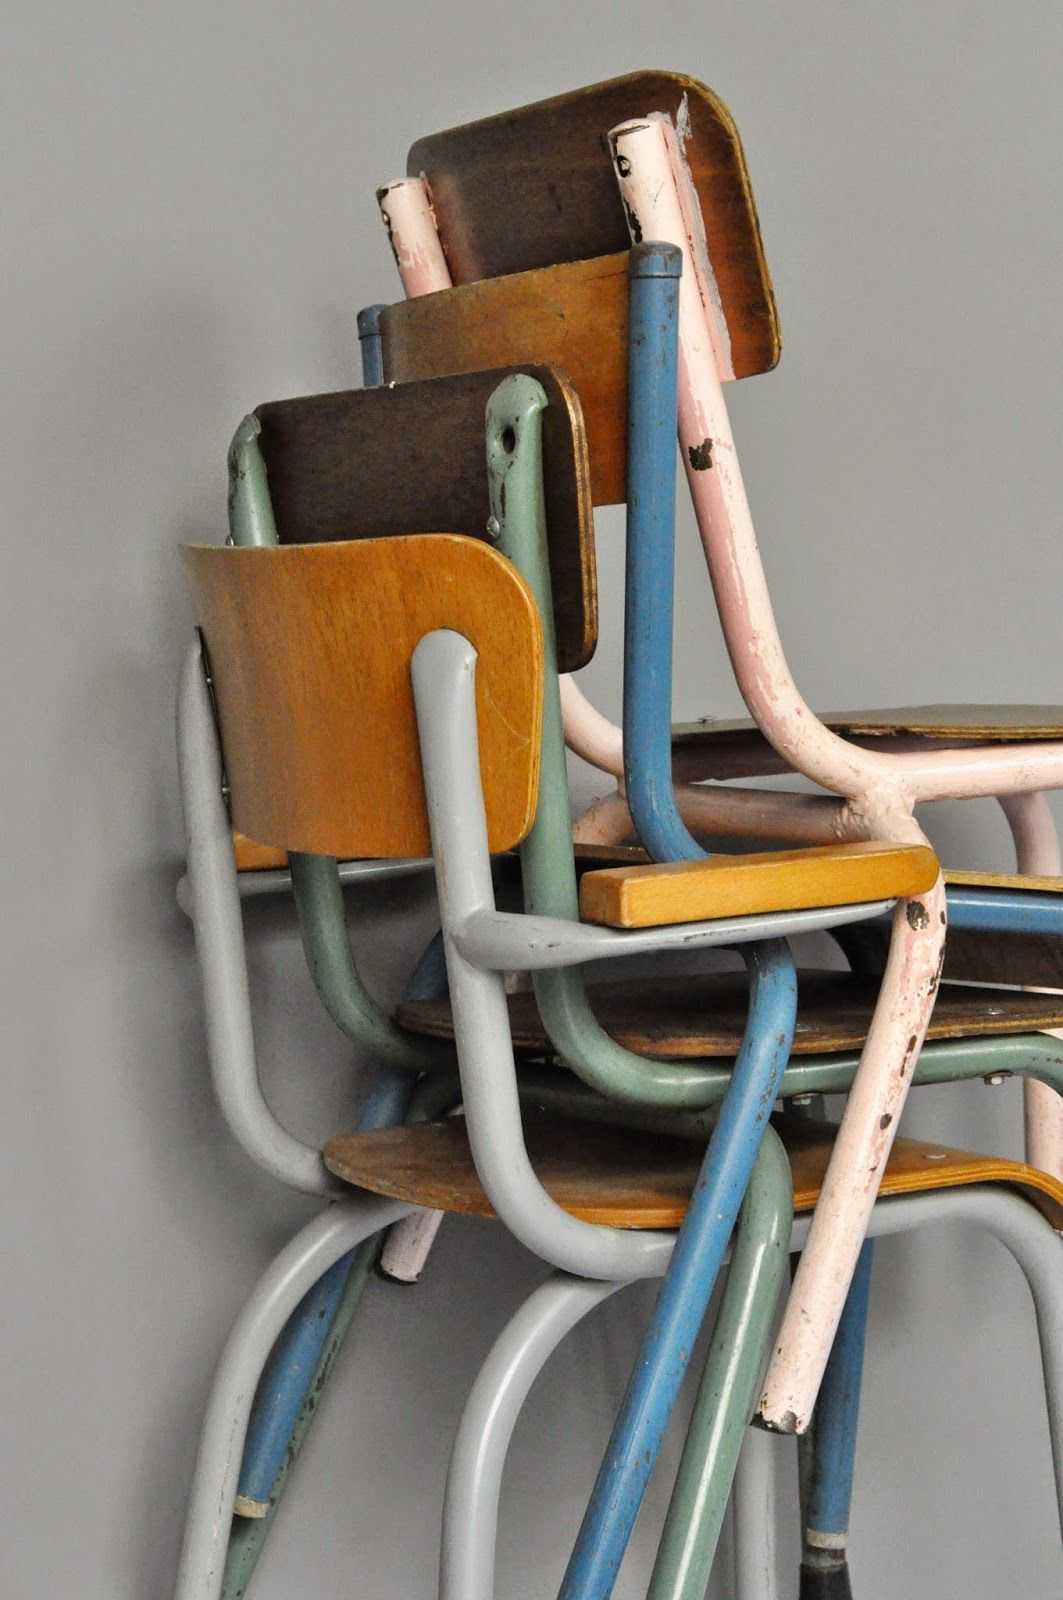 Retro battered school chairs - to kick off a little theme here of stacking chairs.....